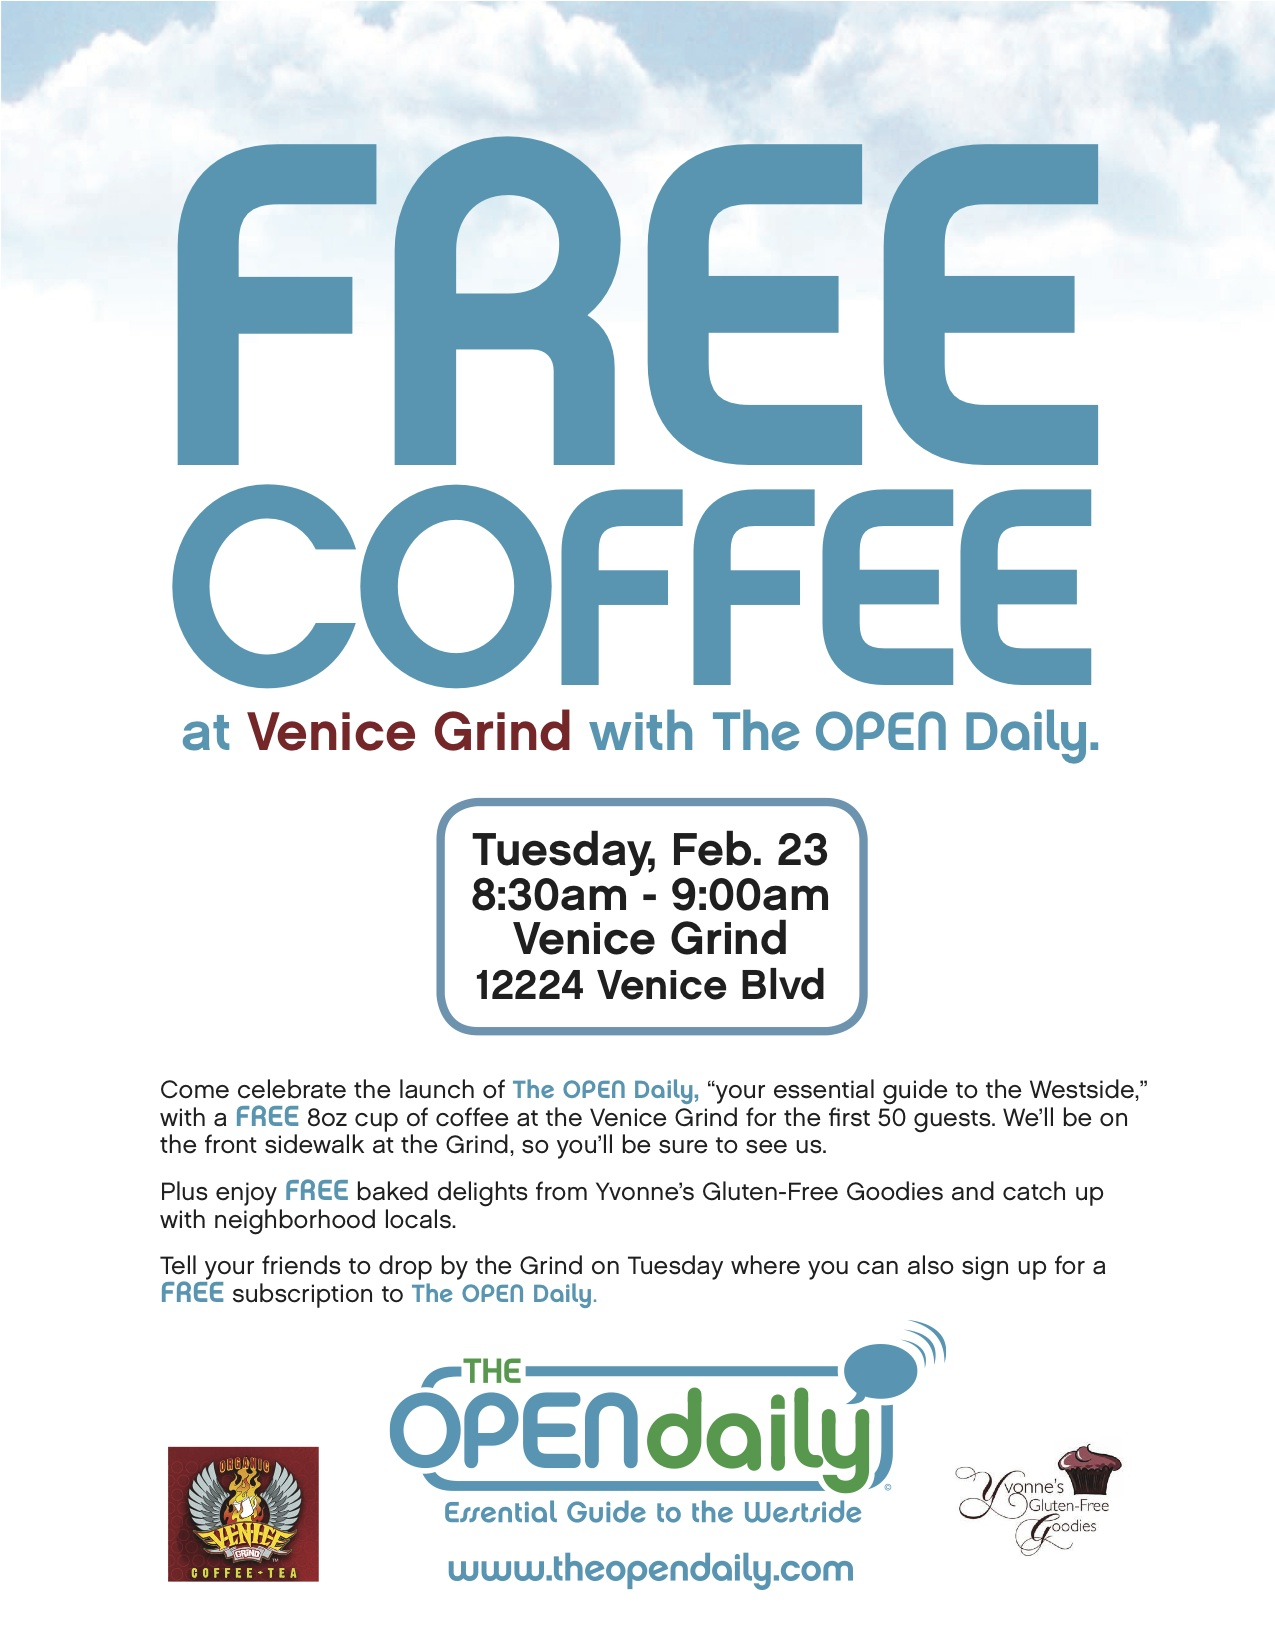 Free Coffee at the Venice Grind 2/23 8:30am